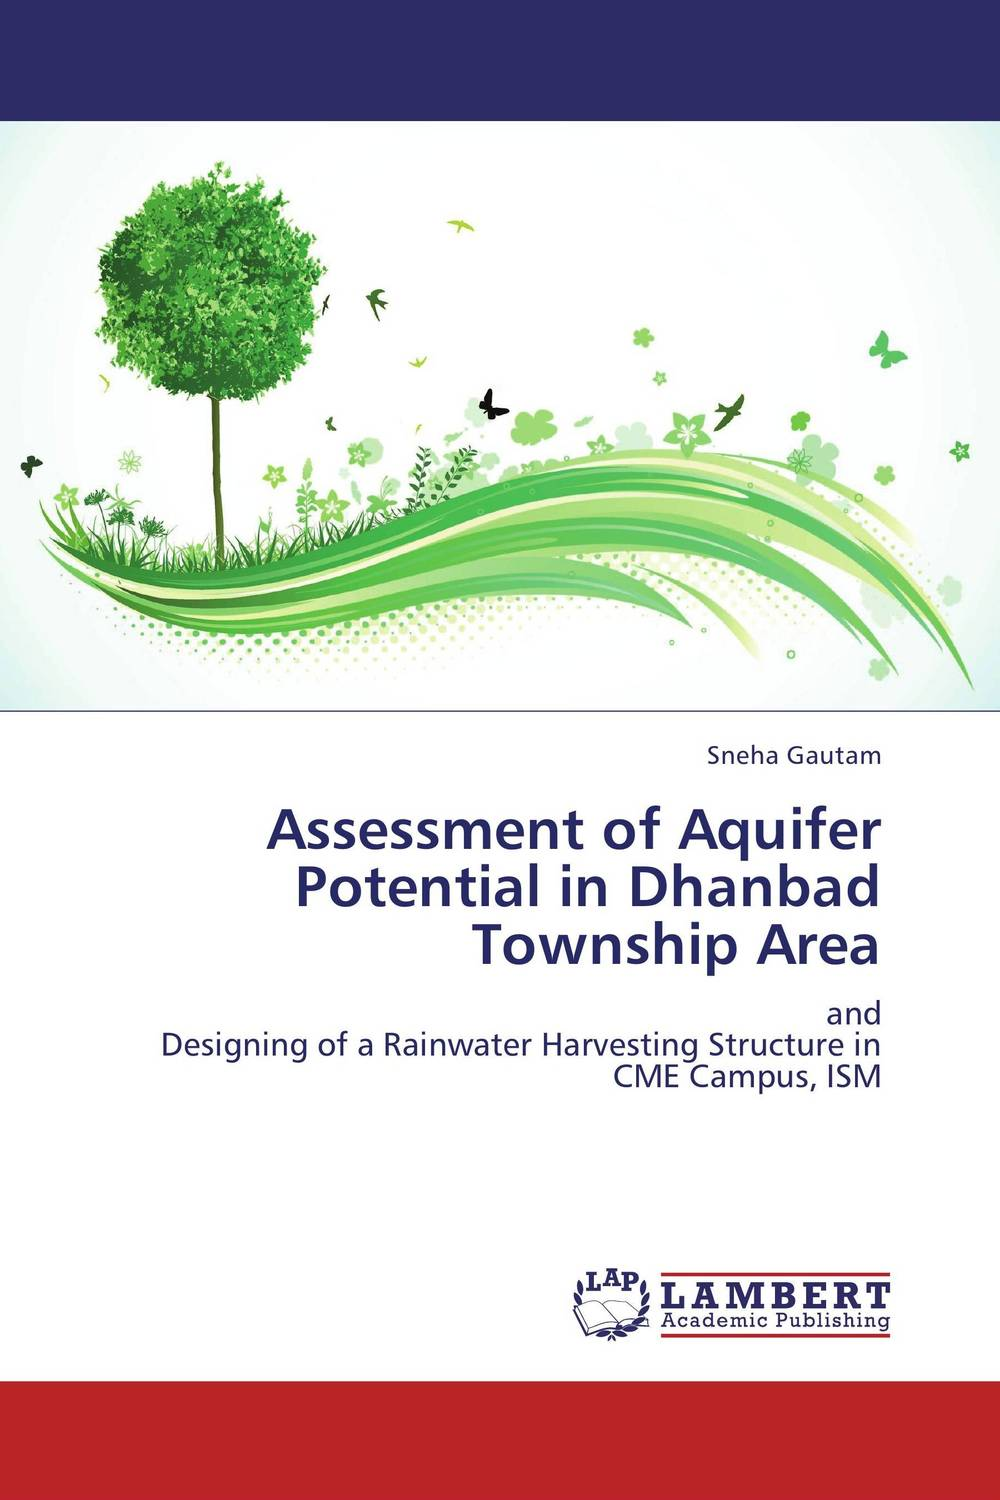 Assessment of Aquifer Potential in Dhanbad Township Area assessment guidance model for hemostatic of surface blutpunkte